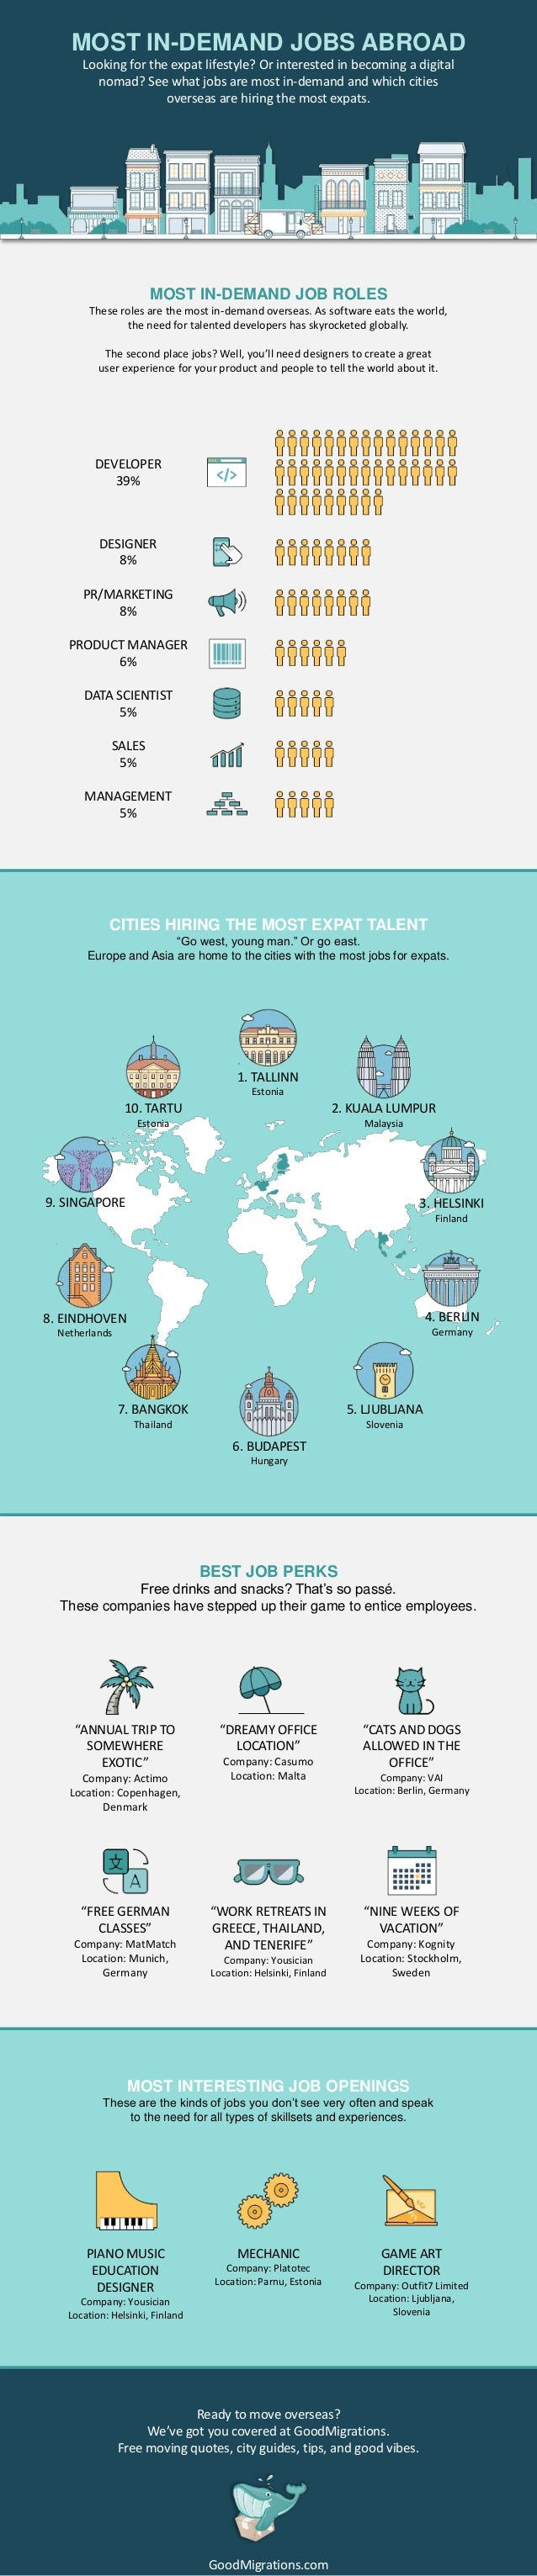 Most In-Demand Jobs for Expats Infographic